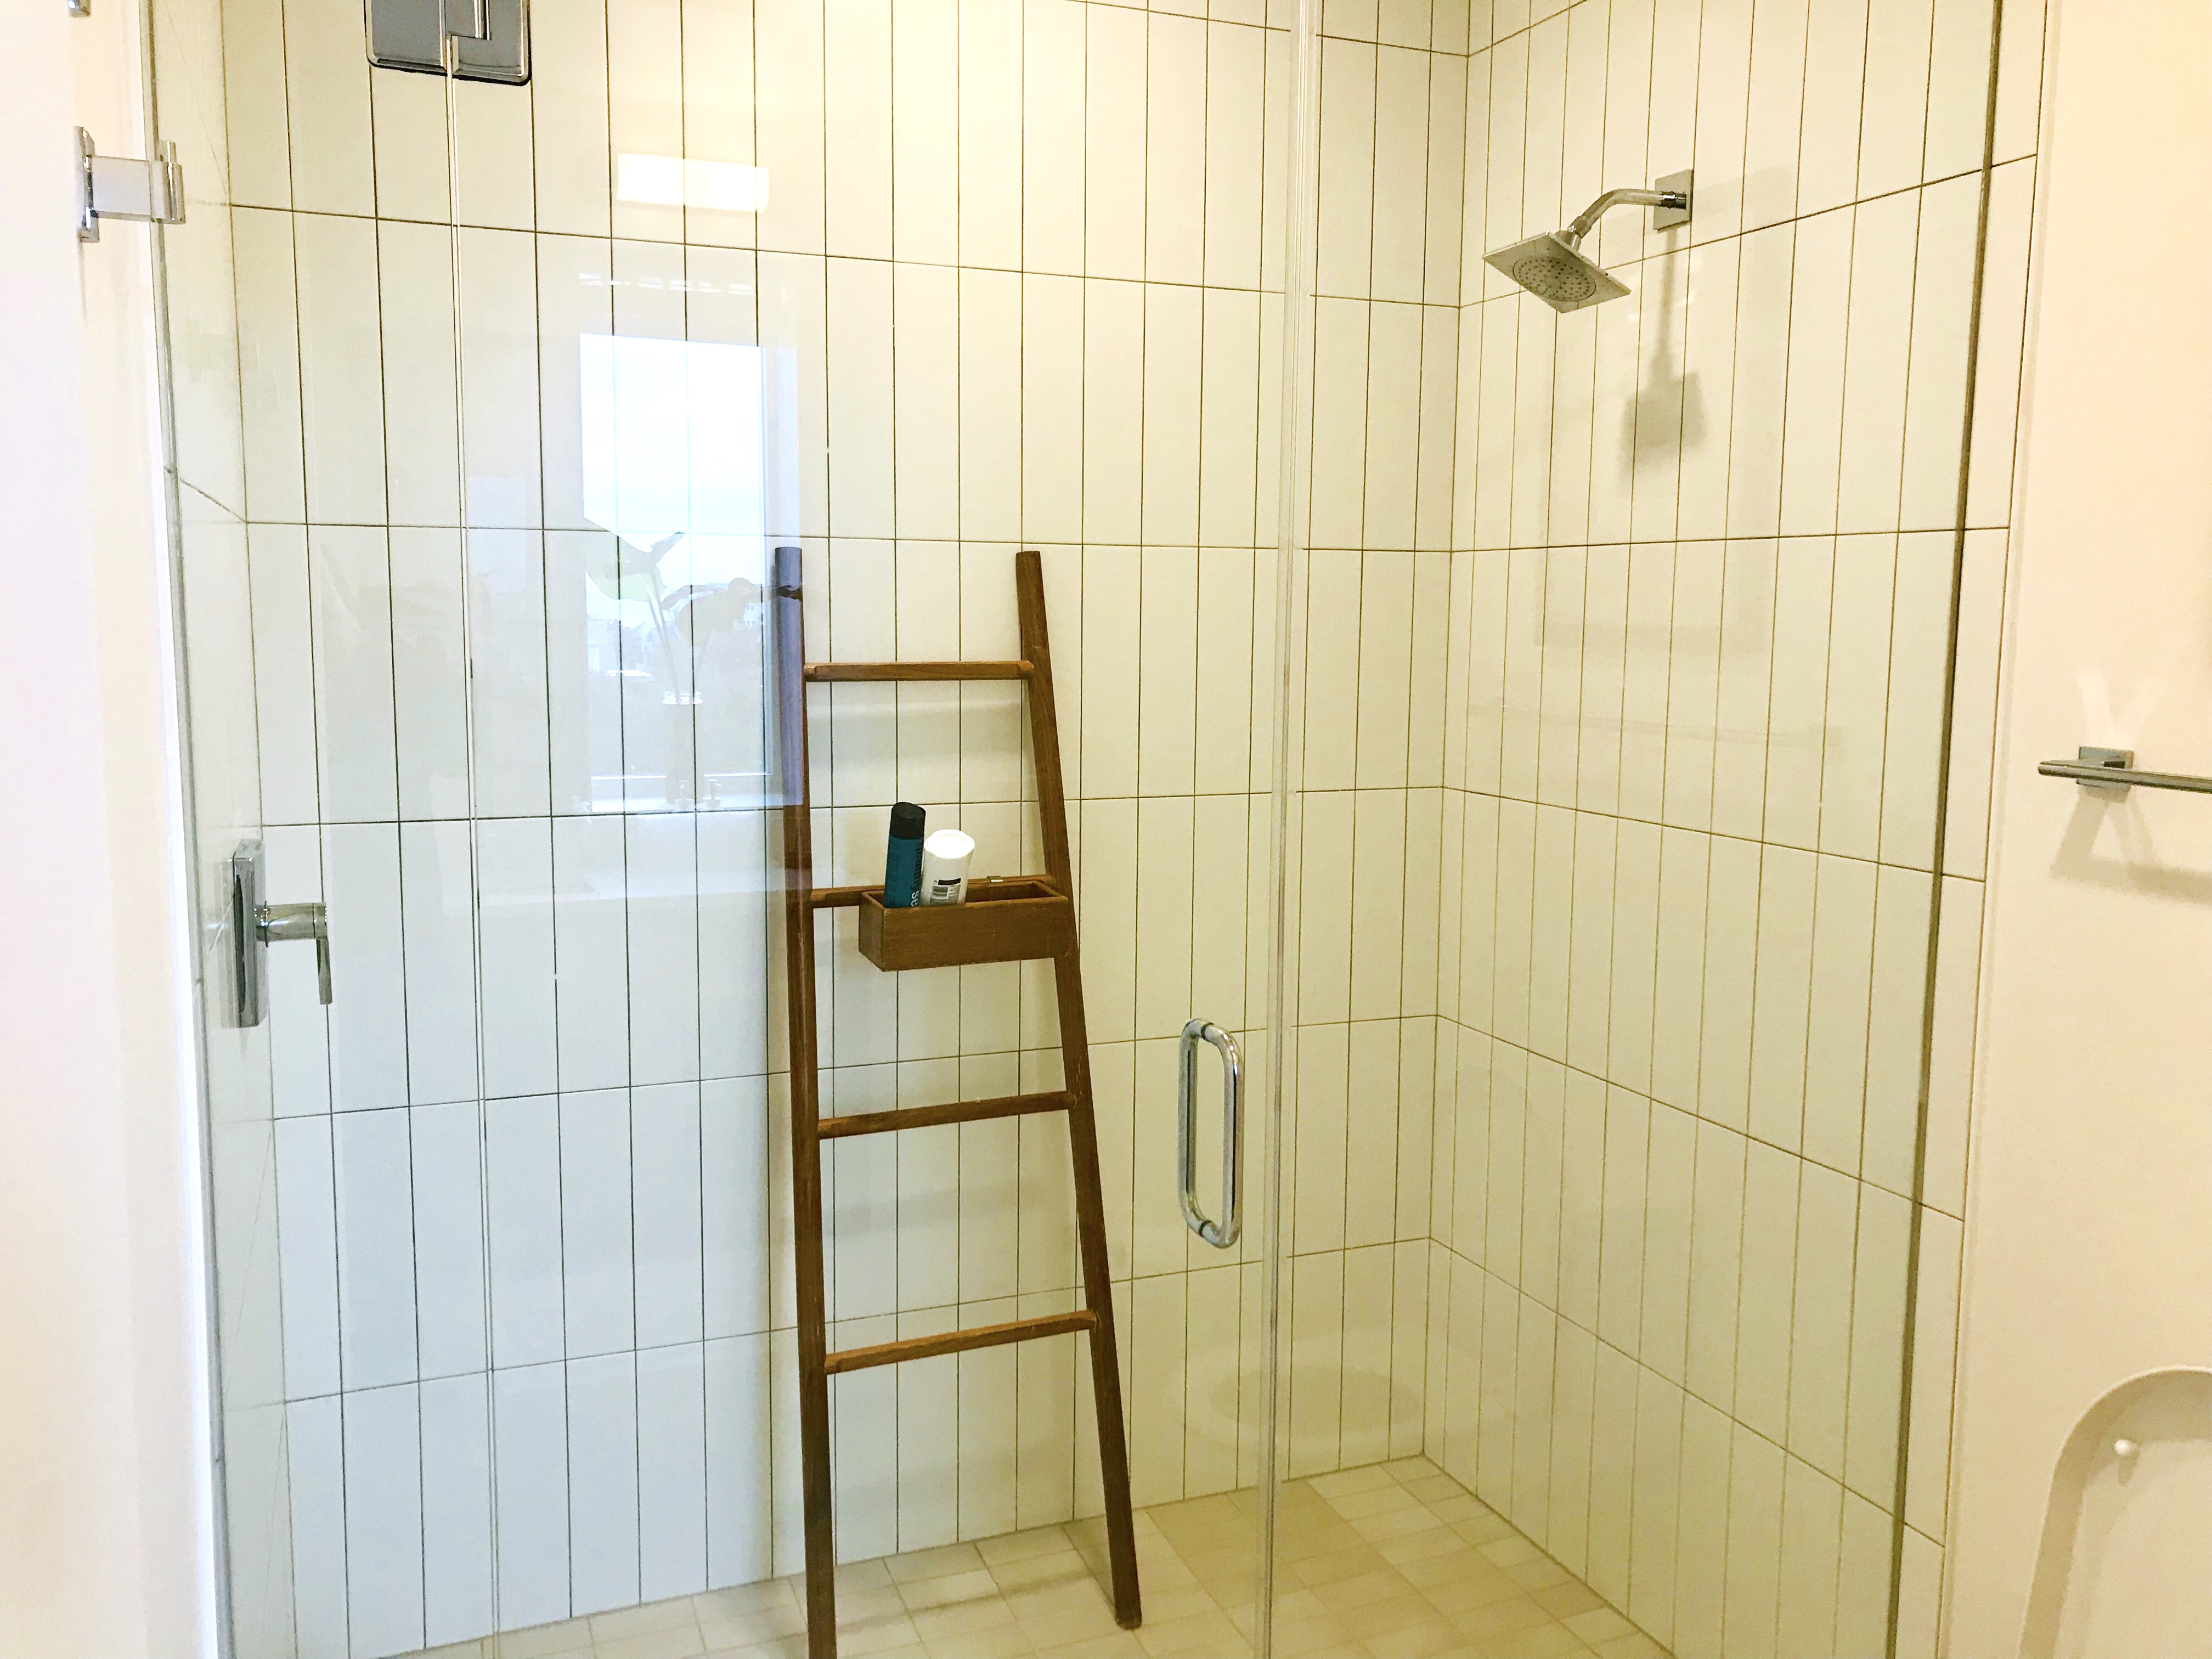 Jack and Jill bath features a walk-in shower